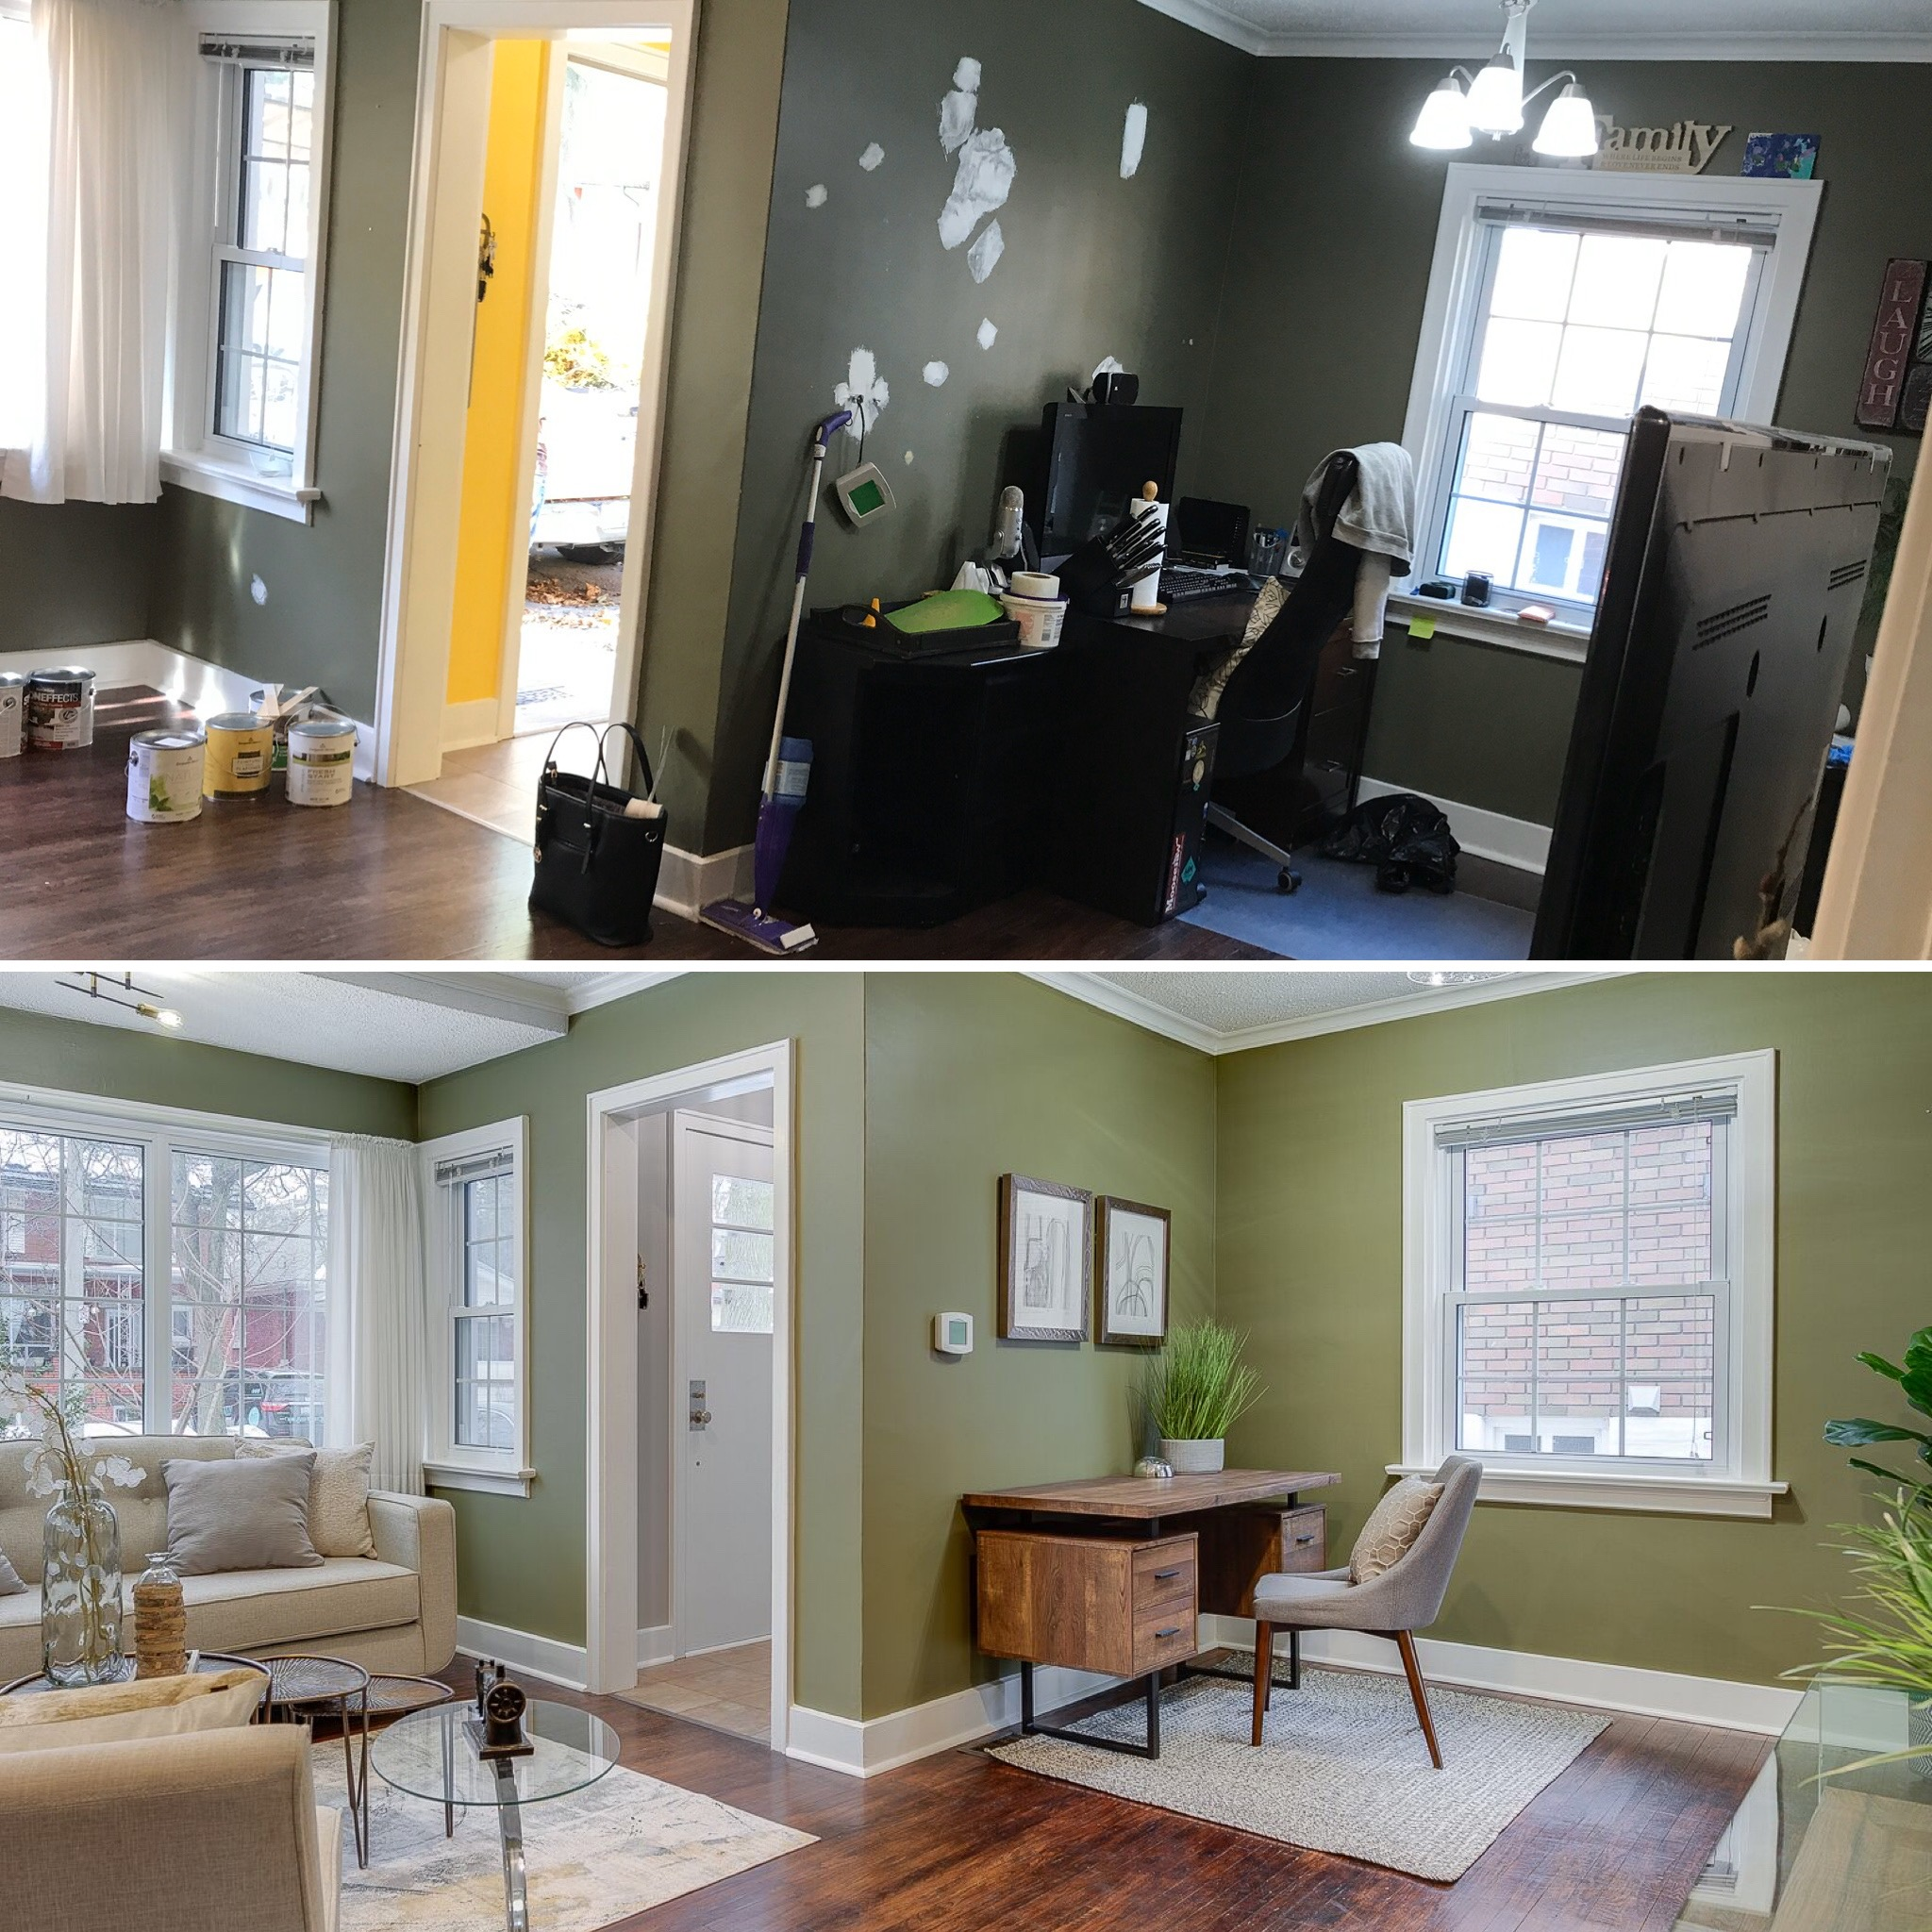 Vacant Staging | Living Room & Office Space Transformation